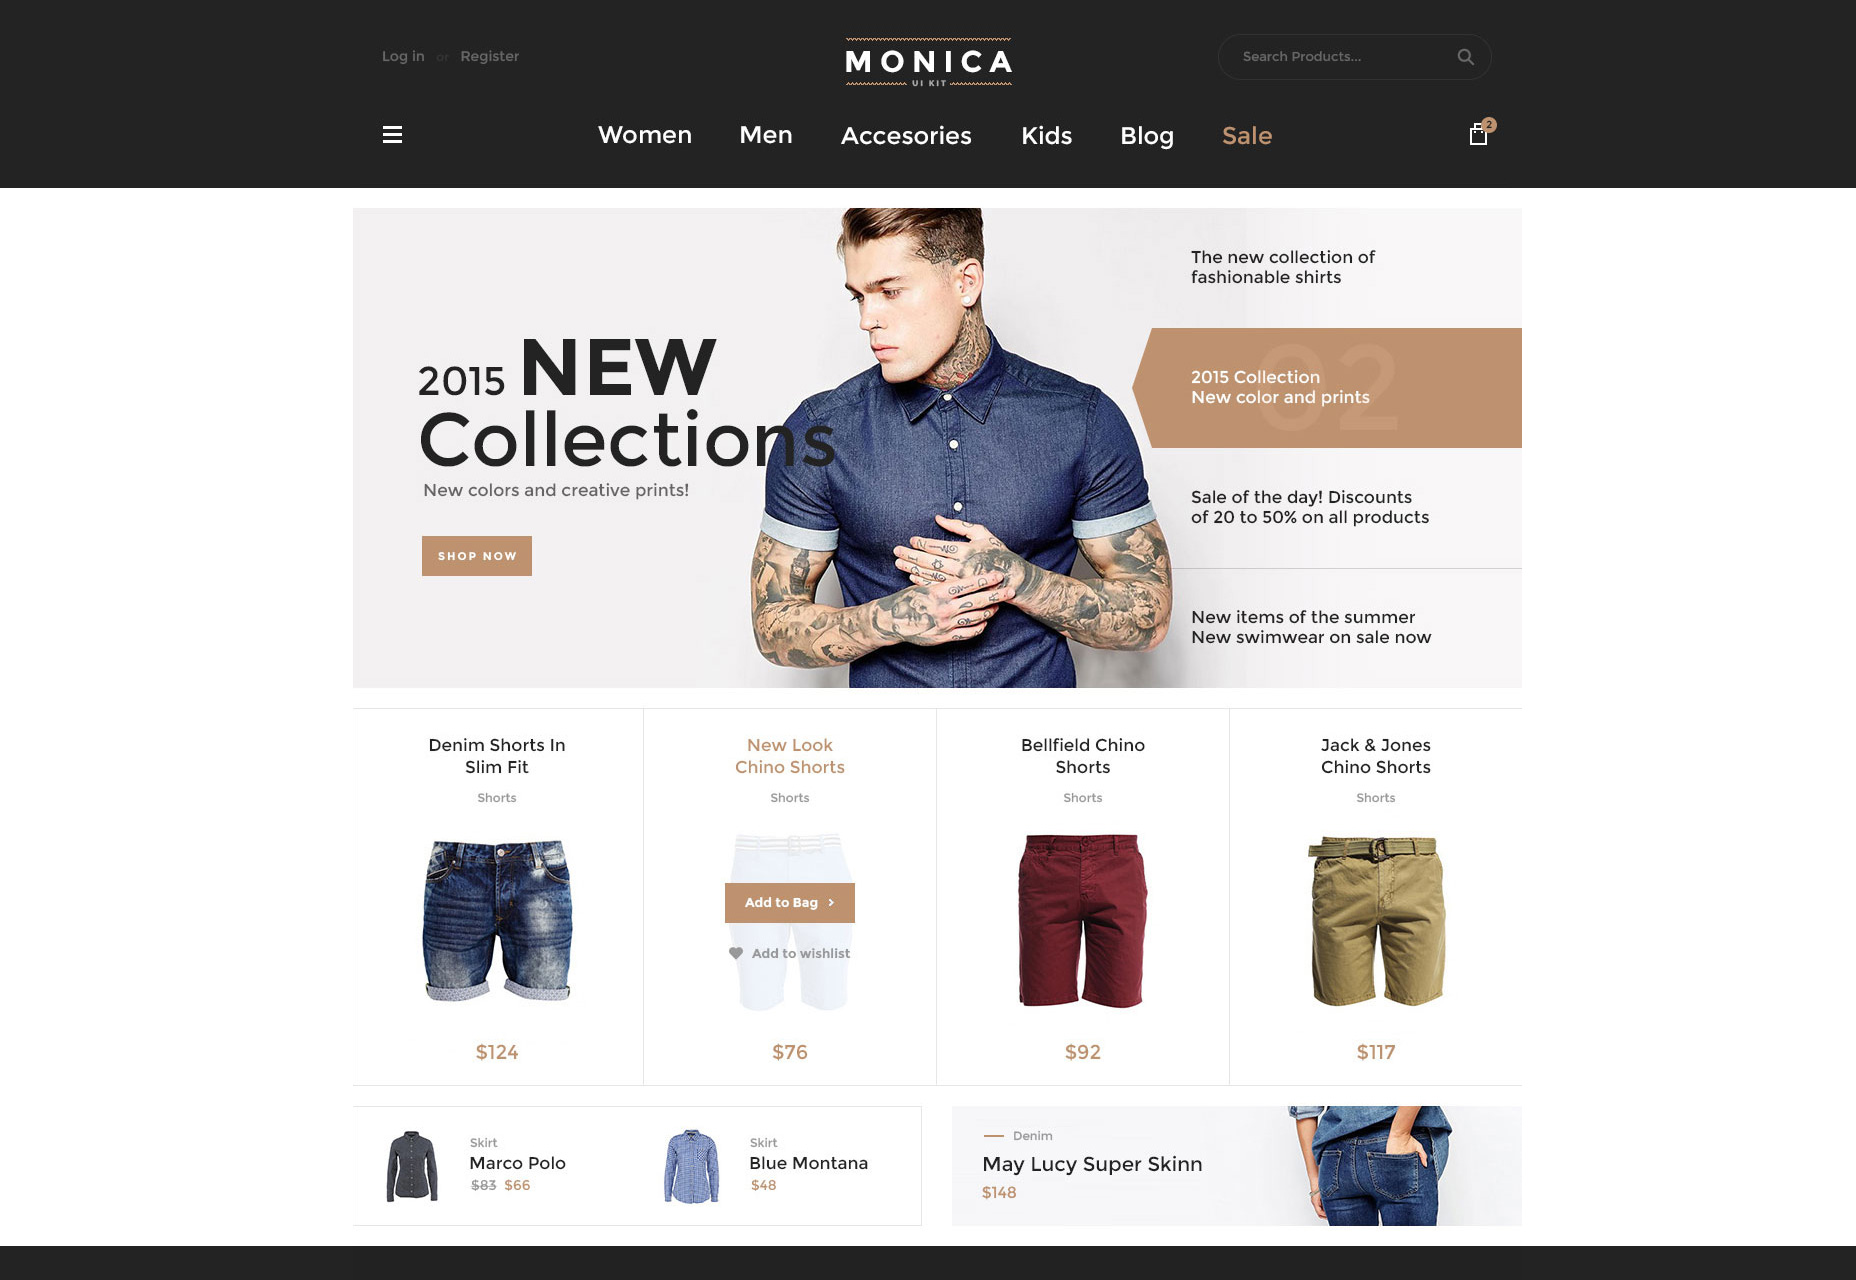 Monica: Web ECommerce Web UI Kit Freeware